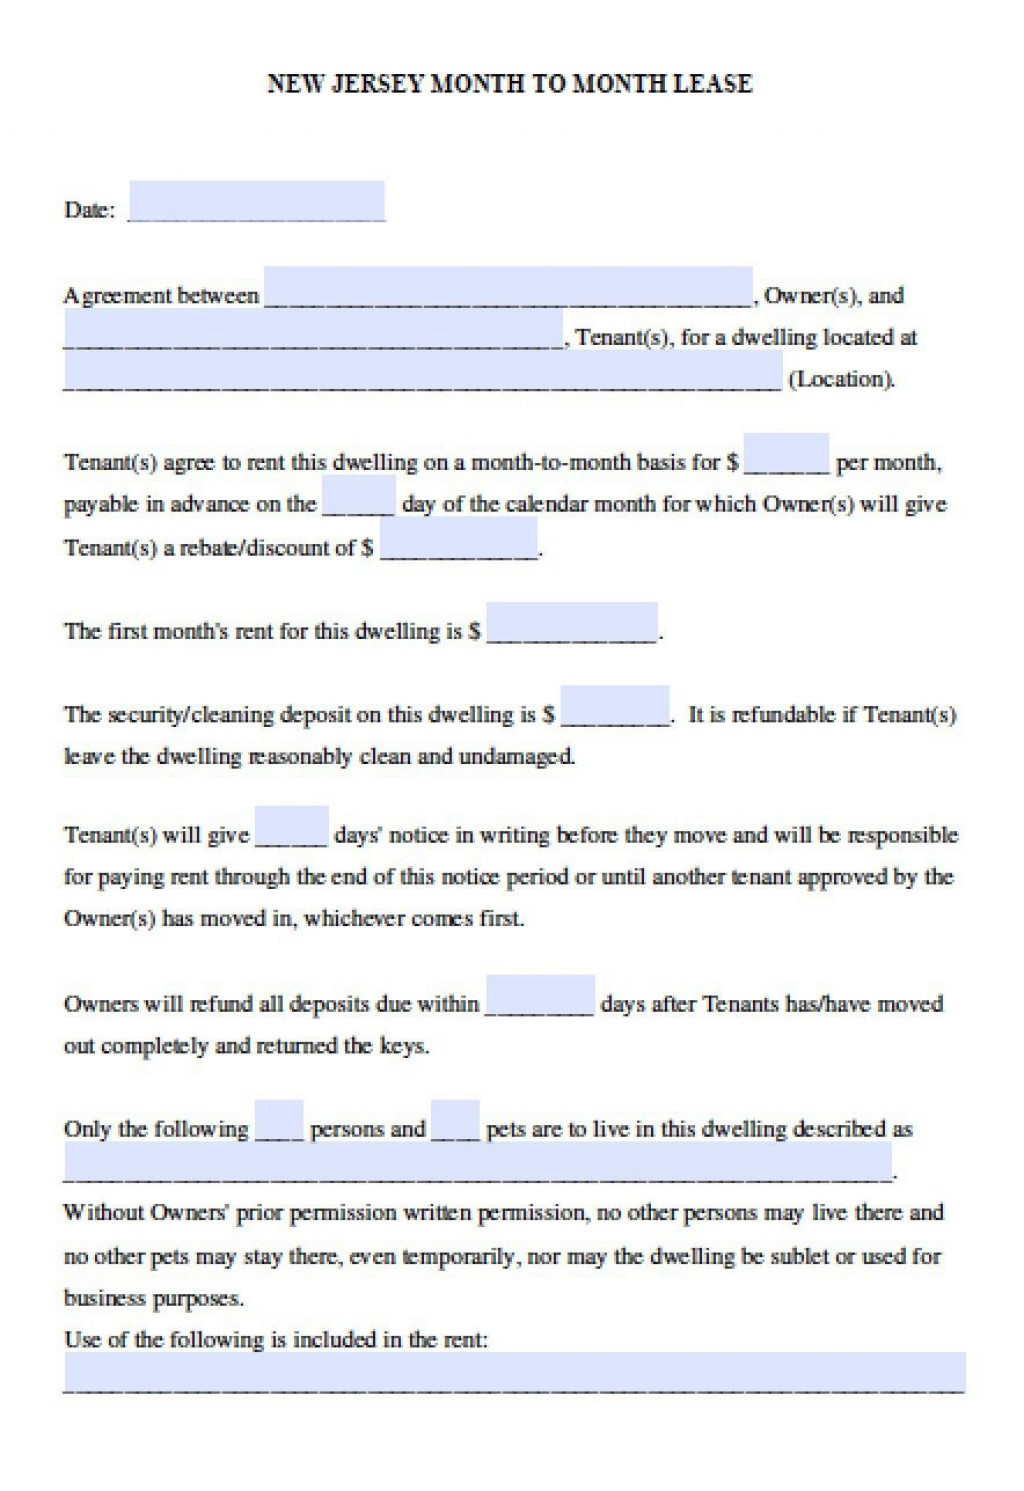 006 Magnificent Generic Rental Lease Agreement Nj Inspiration  SampleLarge